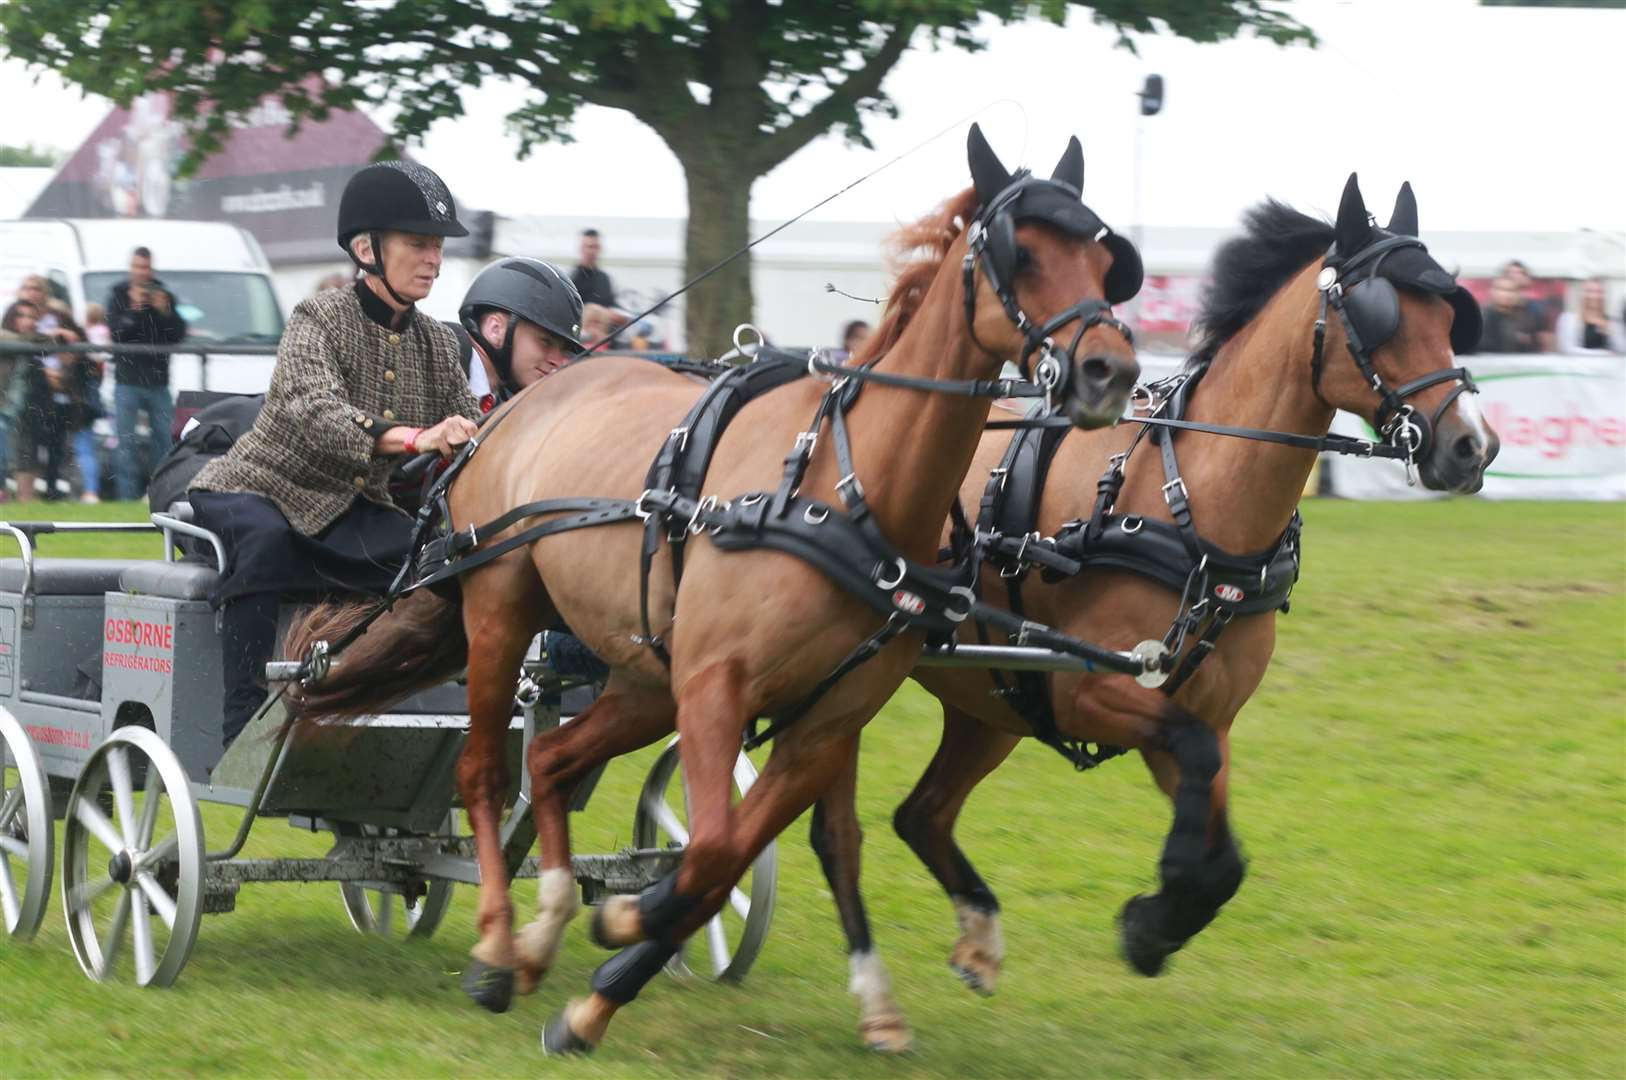 A scurry driving competition at a previous Kent County Show Picture: John Westhrop